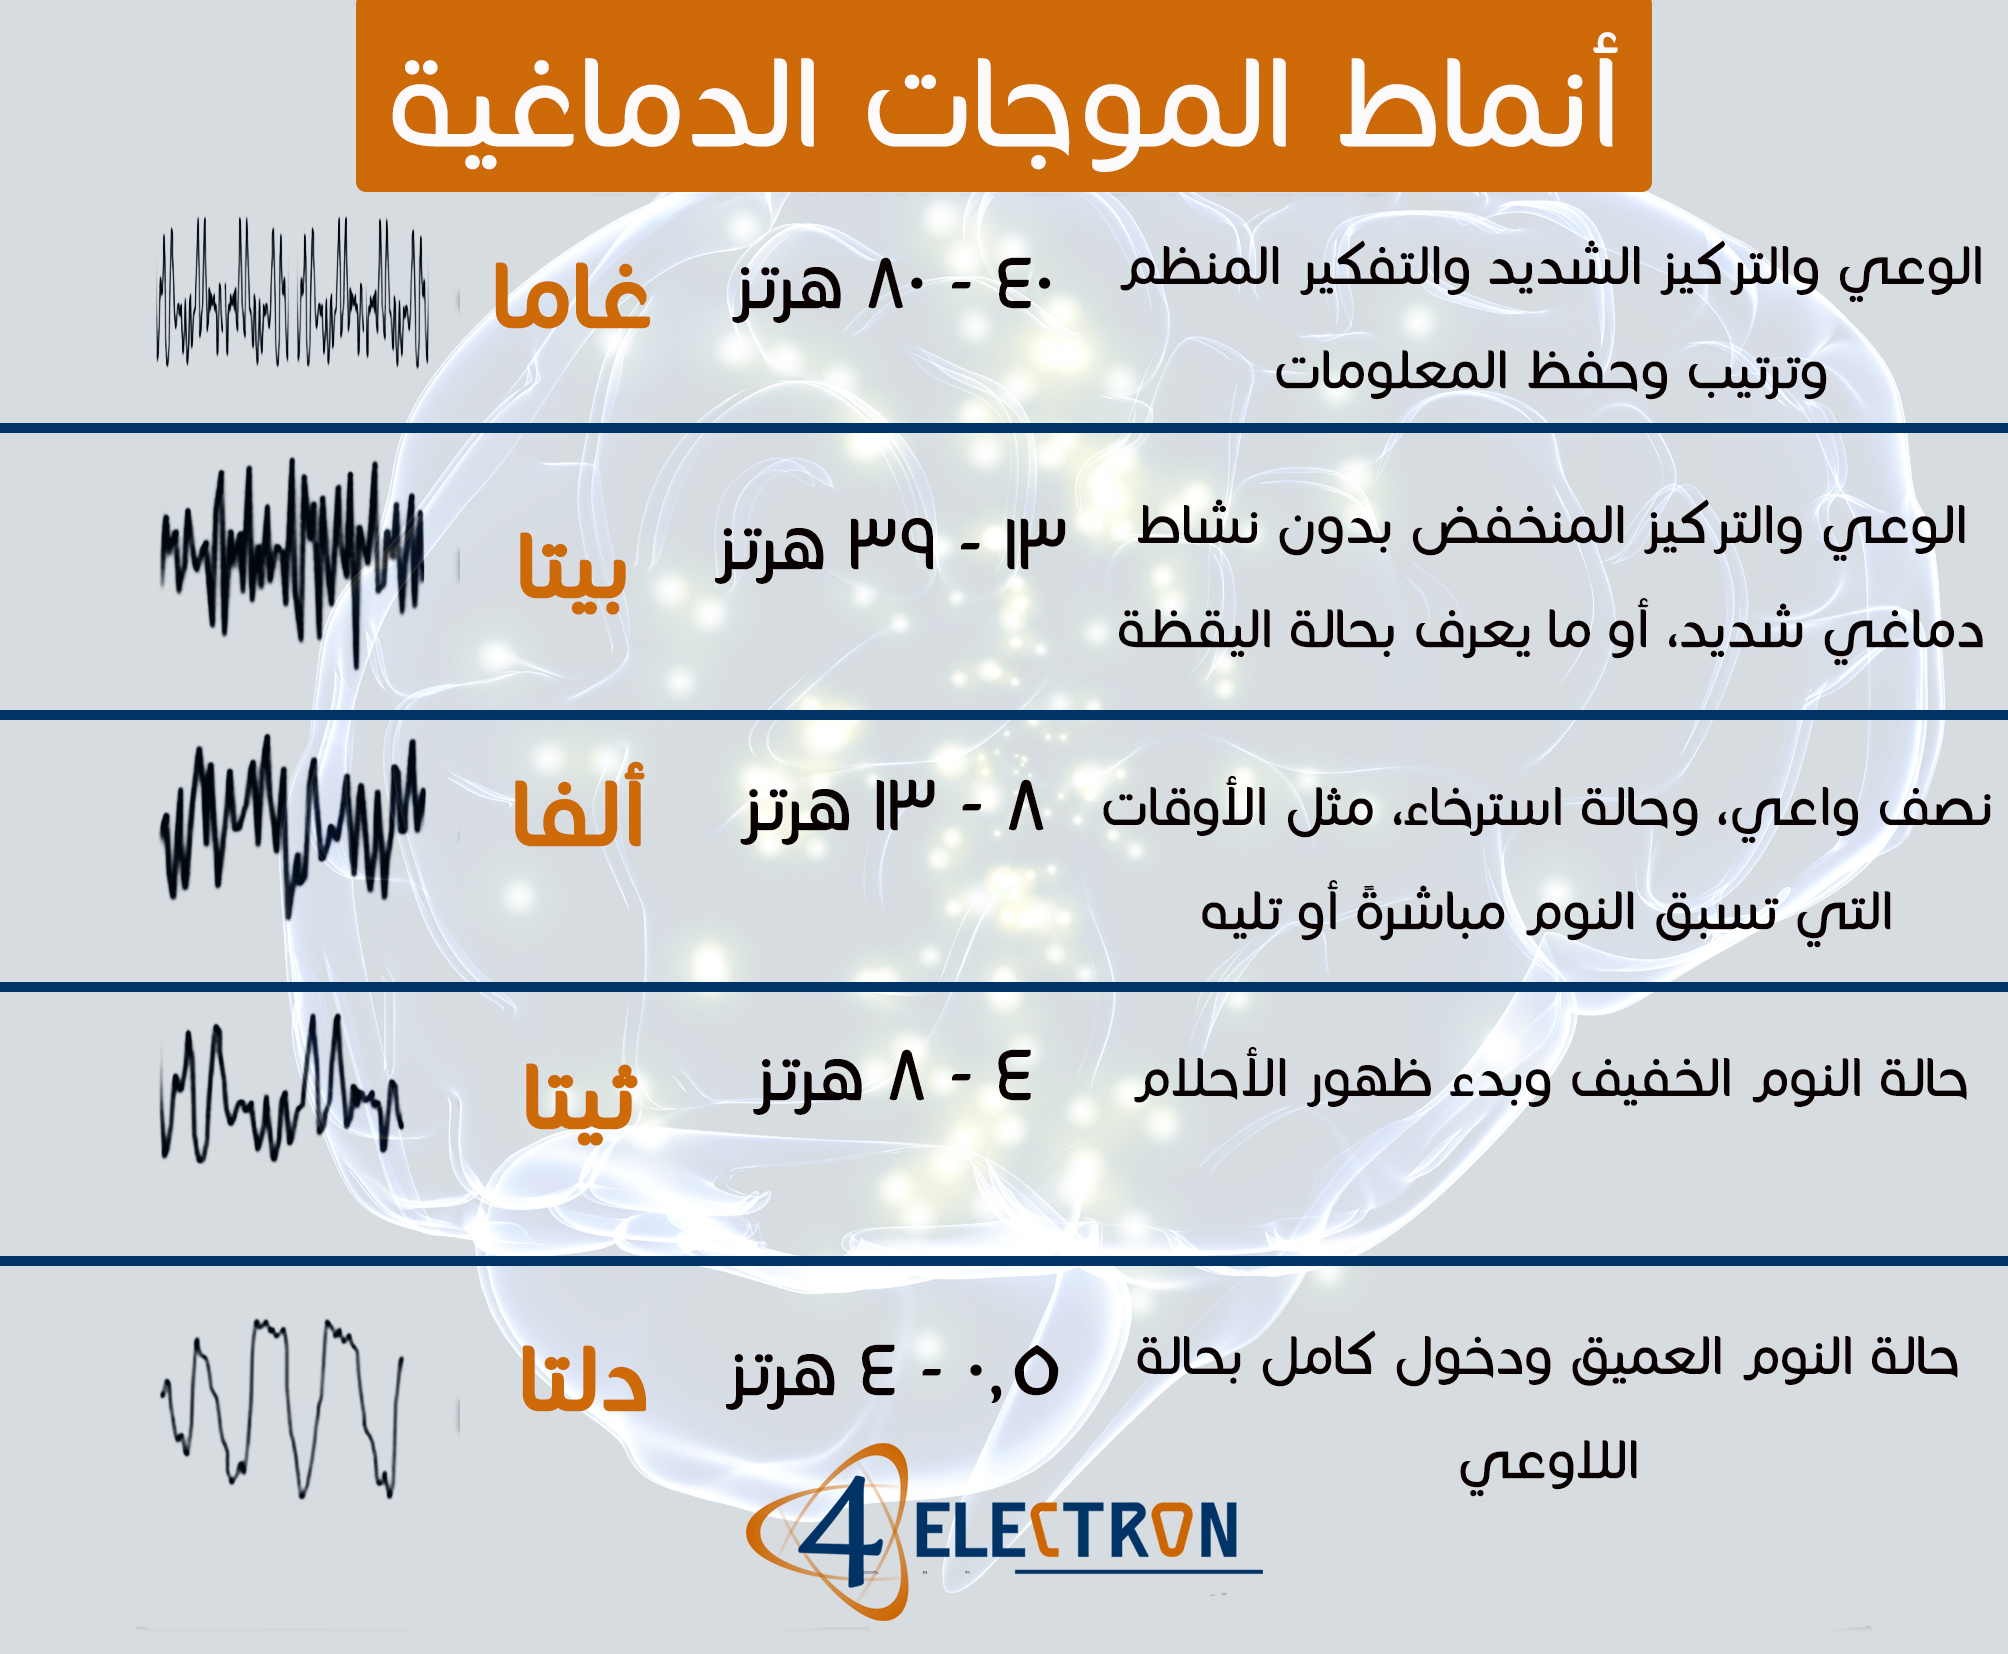 brain-waves-4electron